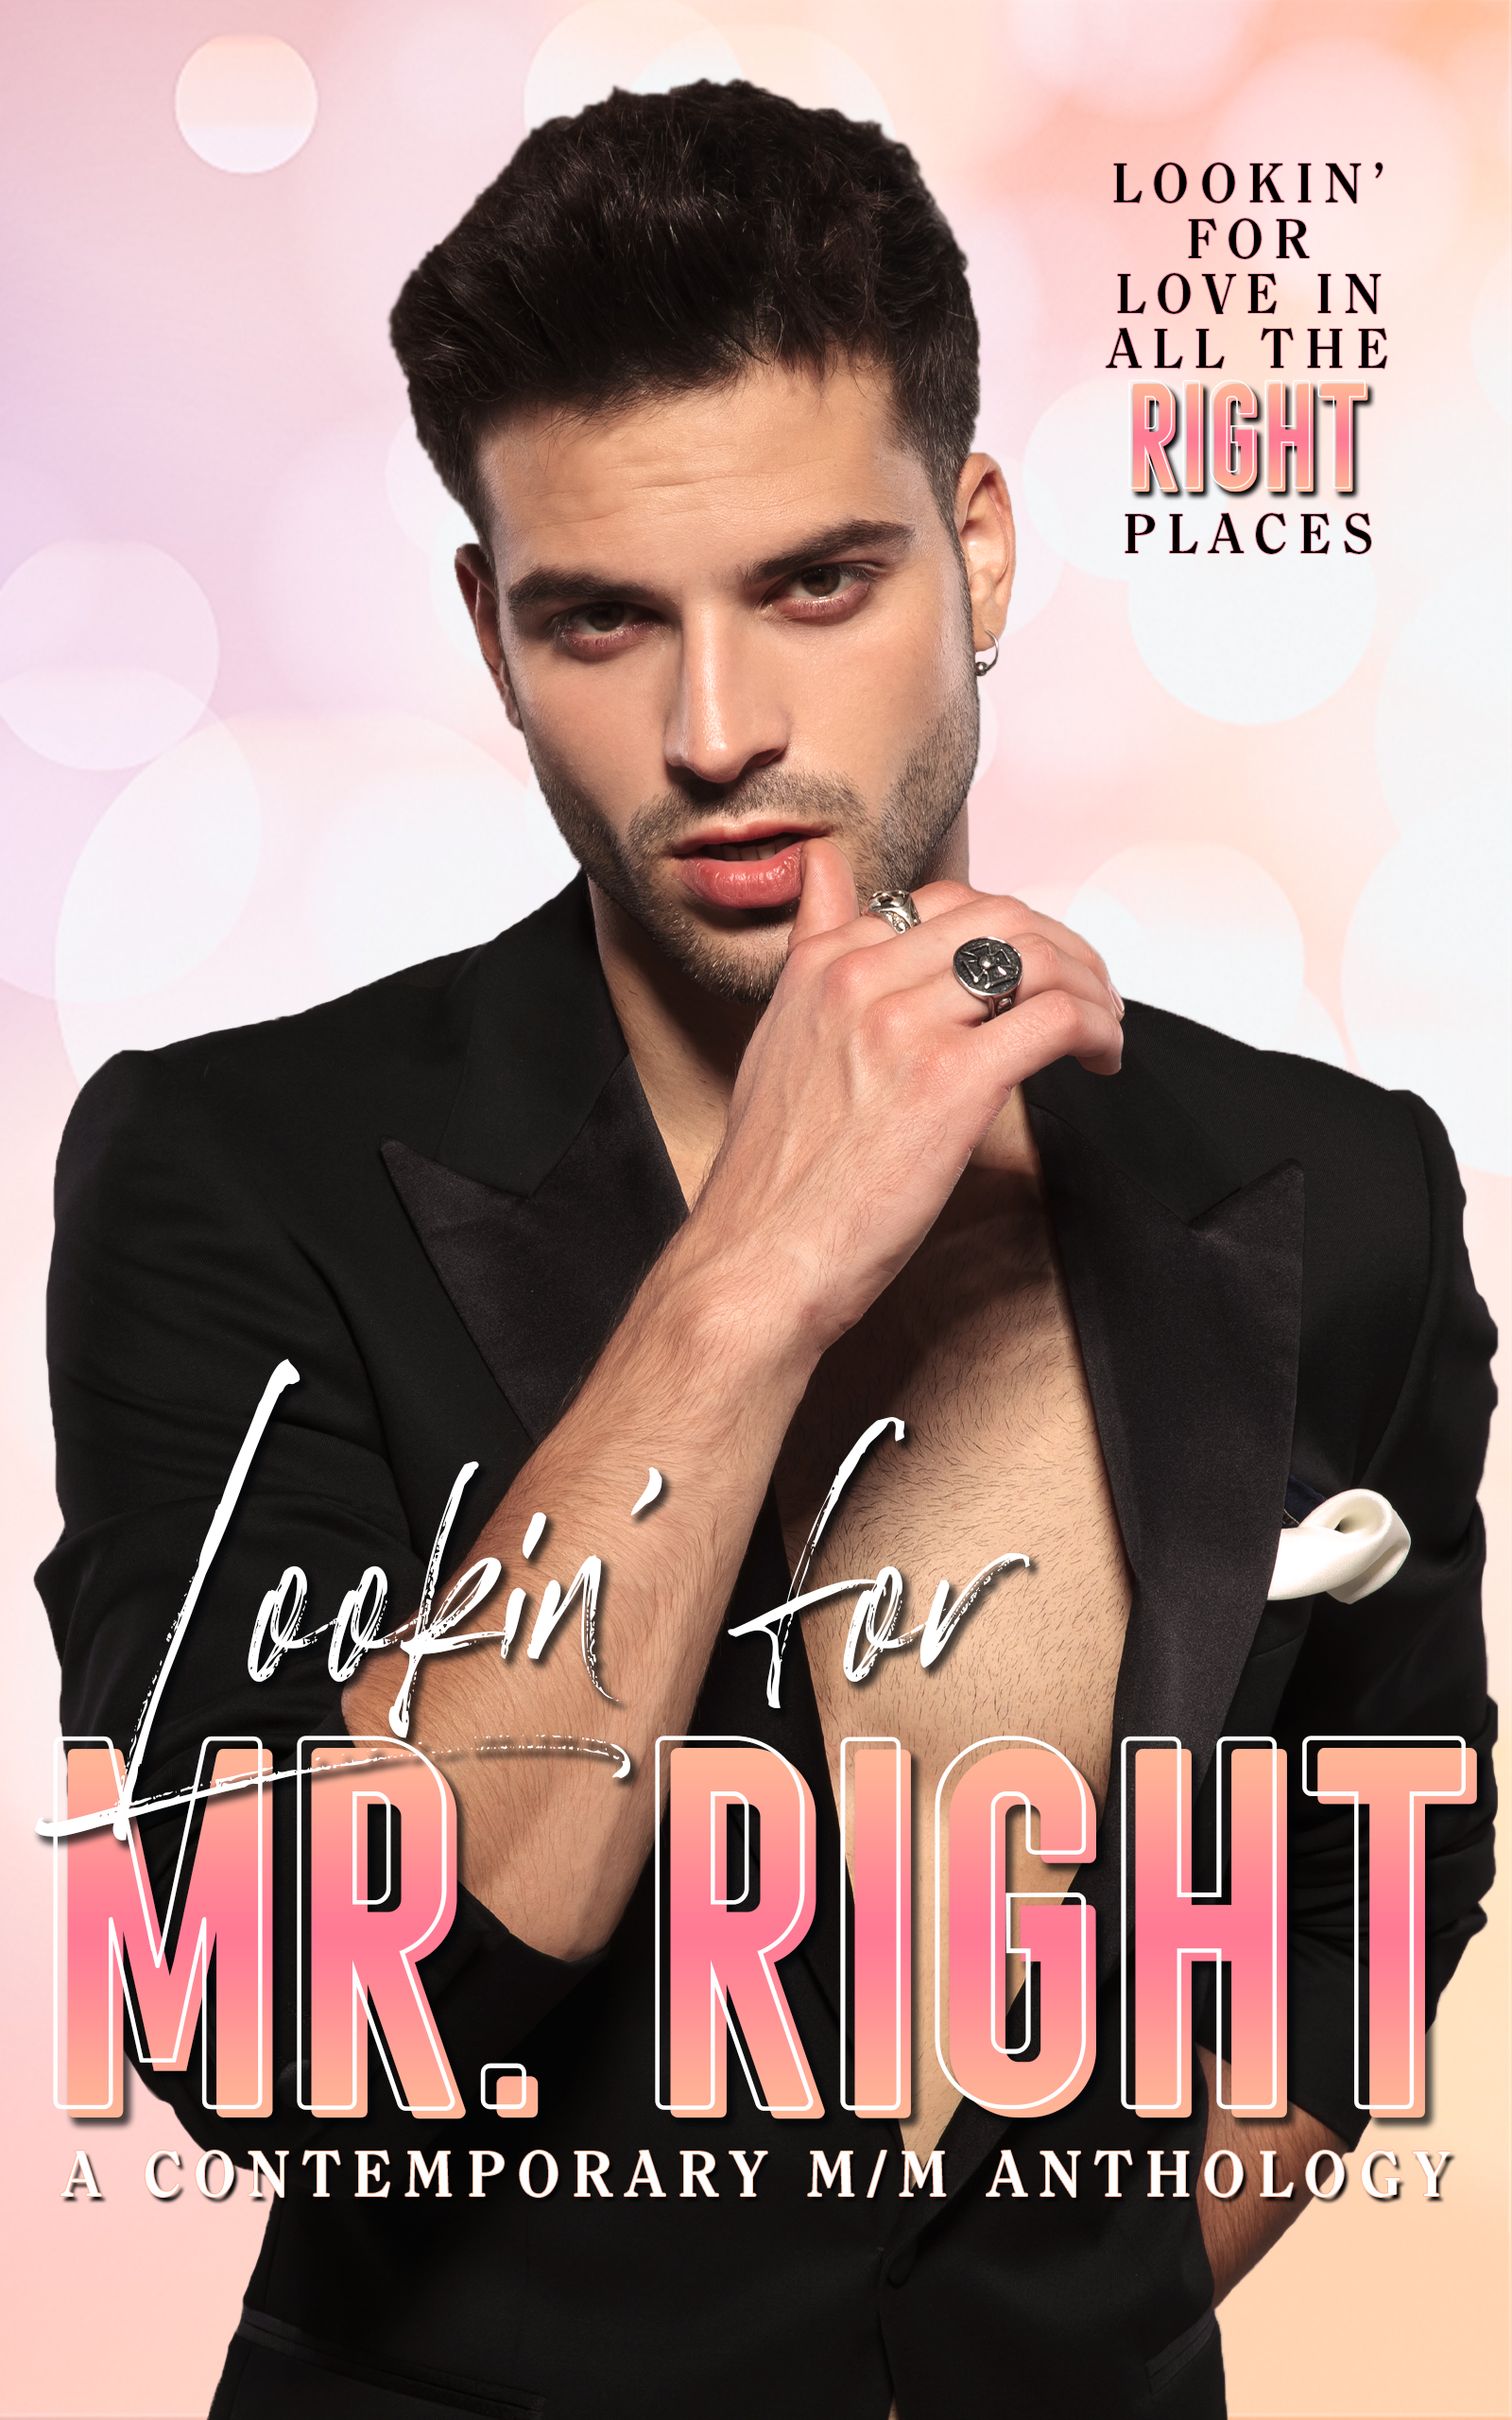 Lookin' For Mr. Right Offical Cover